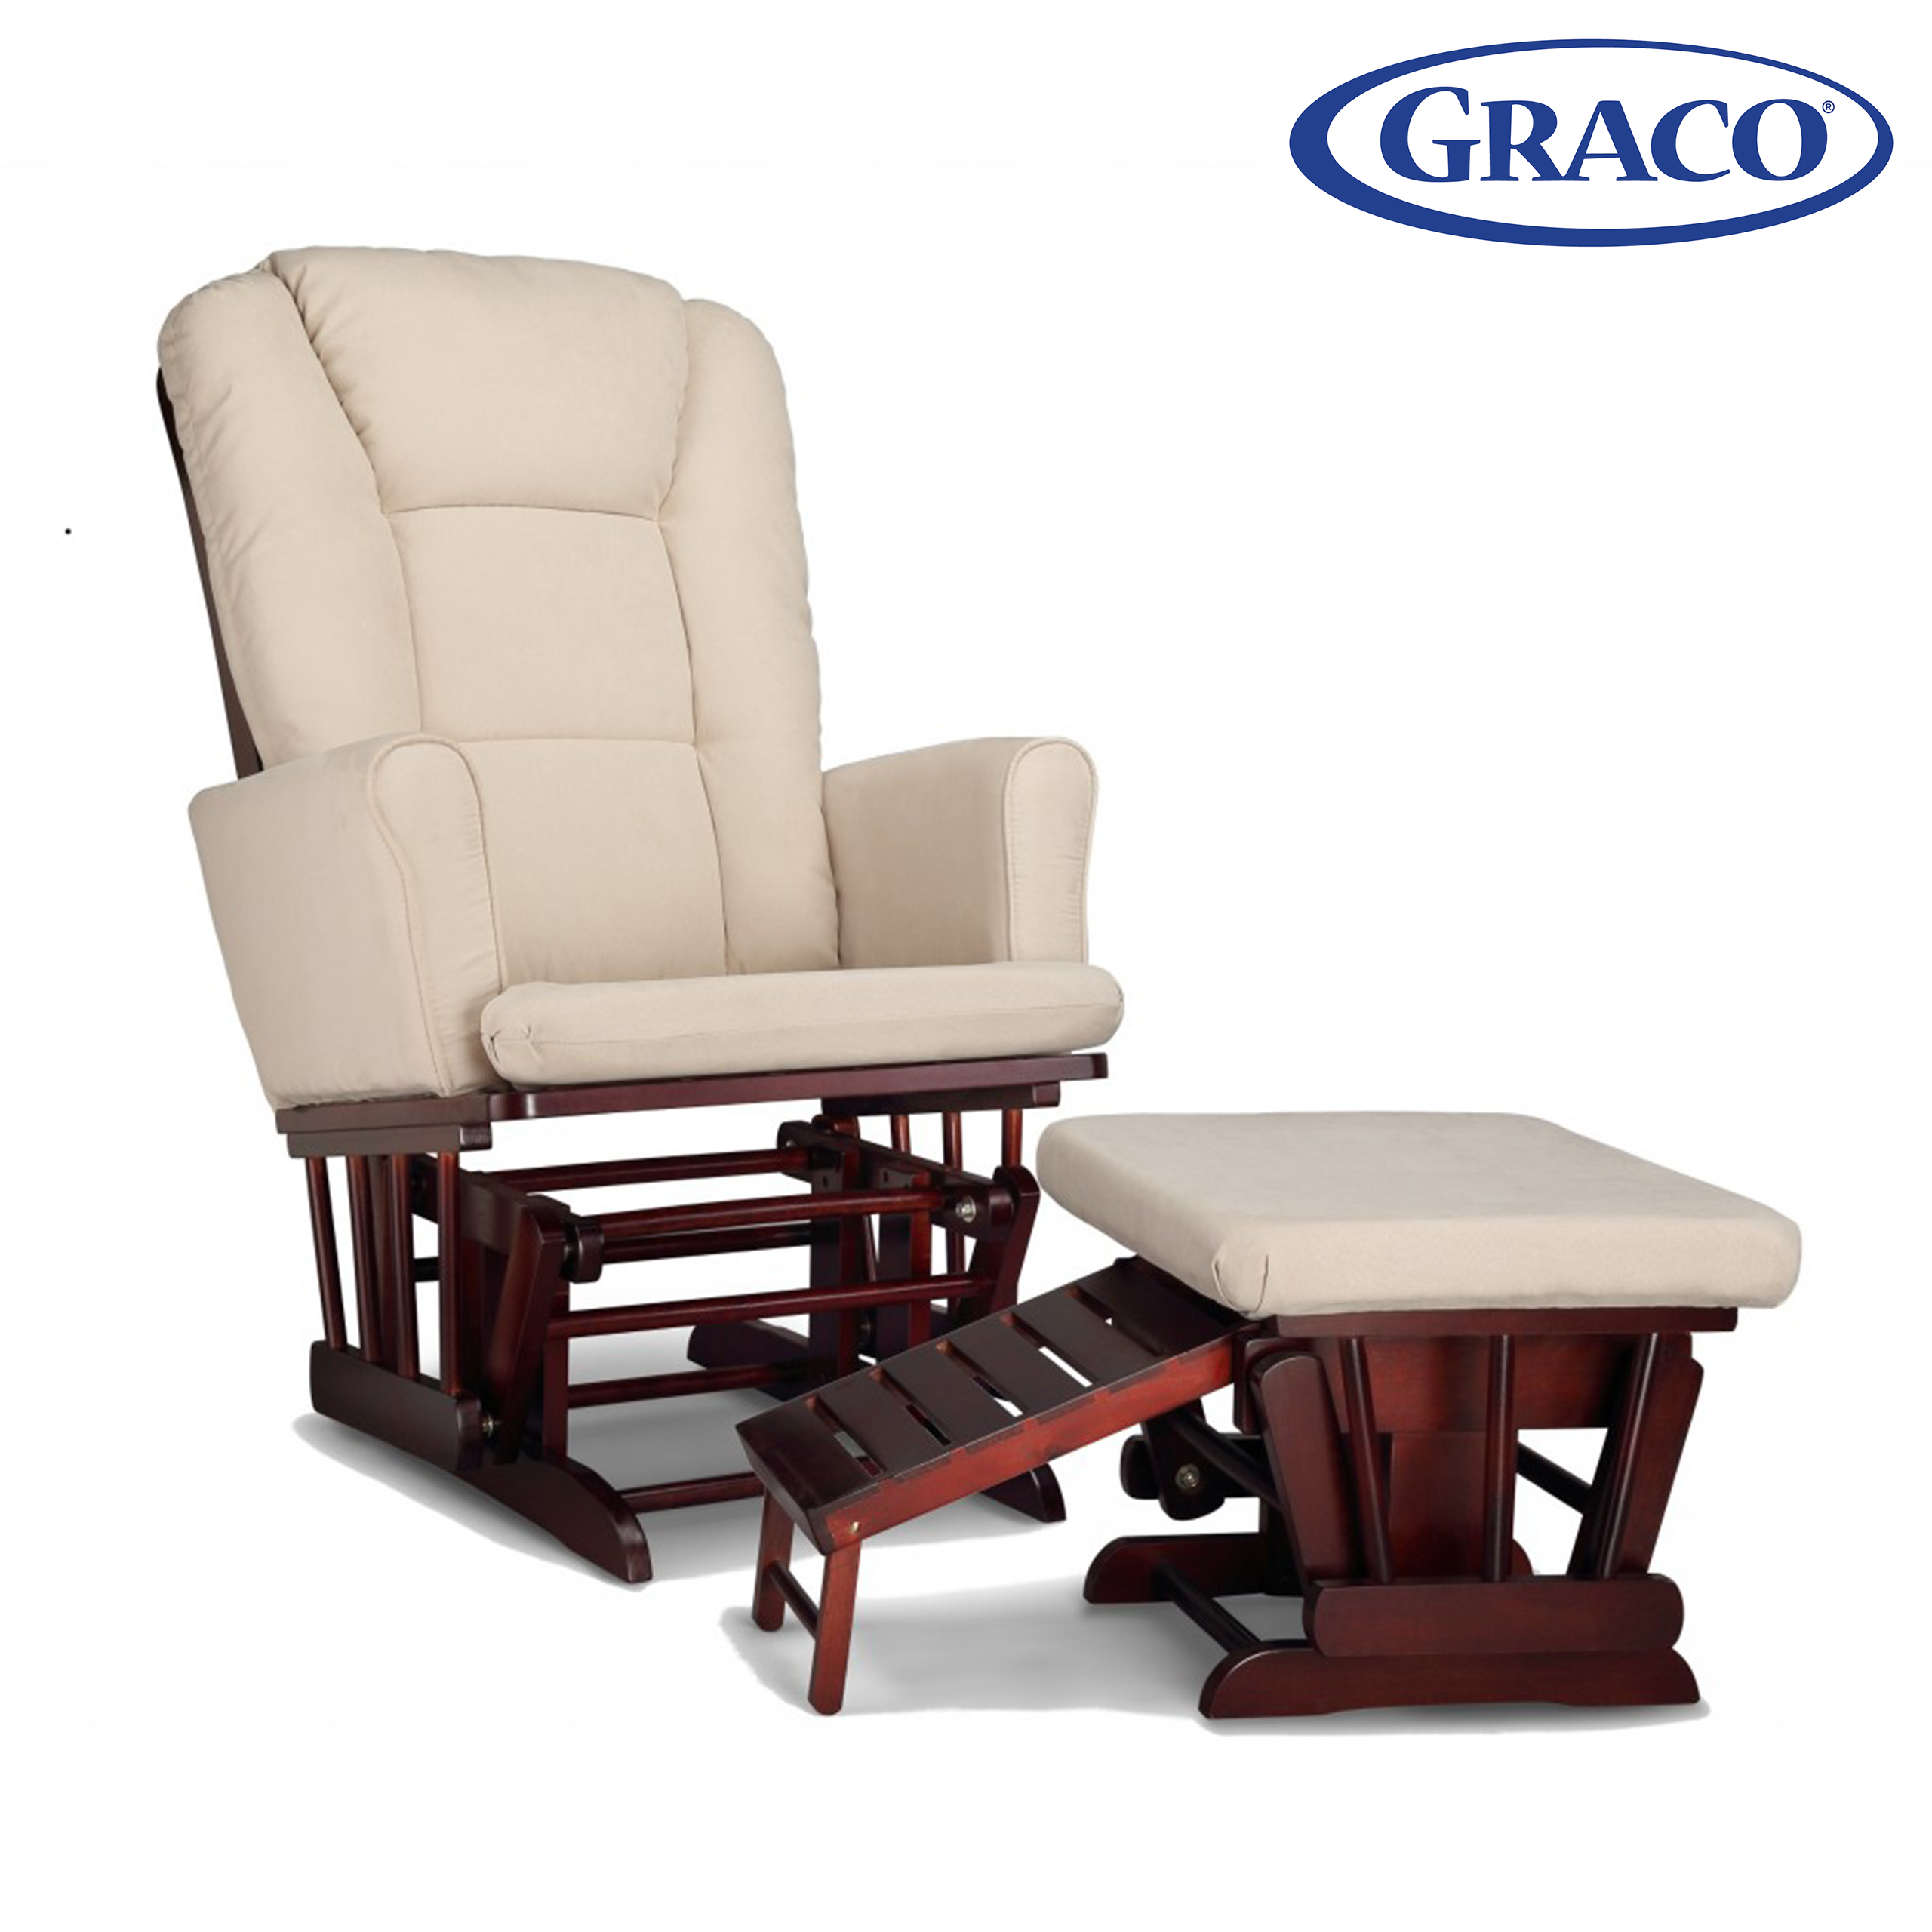 Graco Sterling Semi-Upholstered Glider and Nursing Ottoman Cherry with Beige Cushions